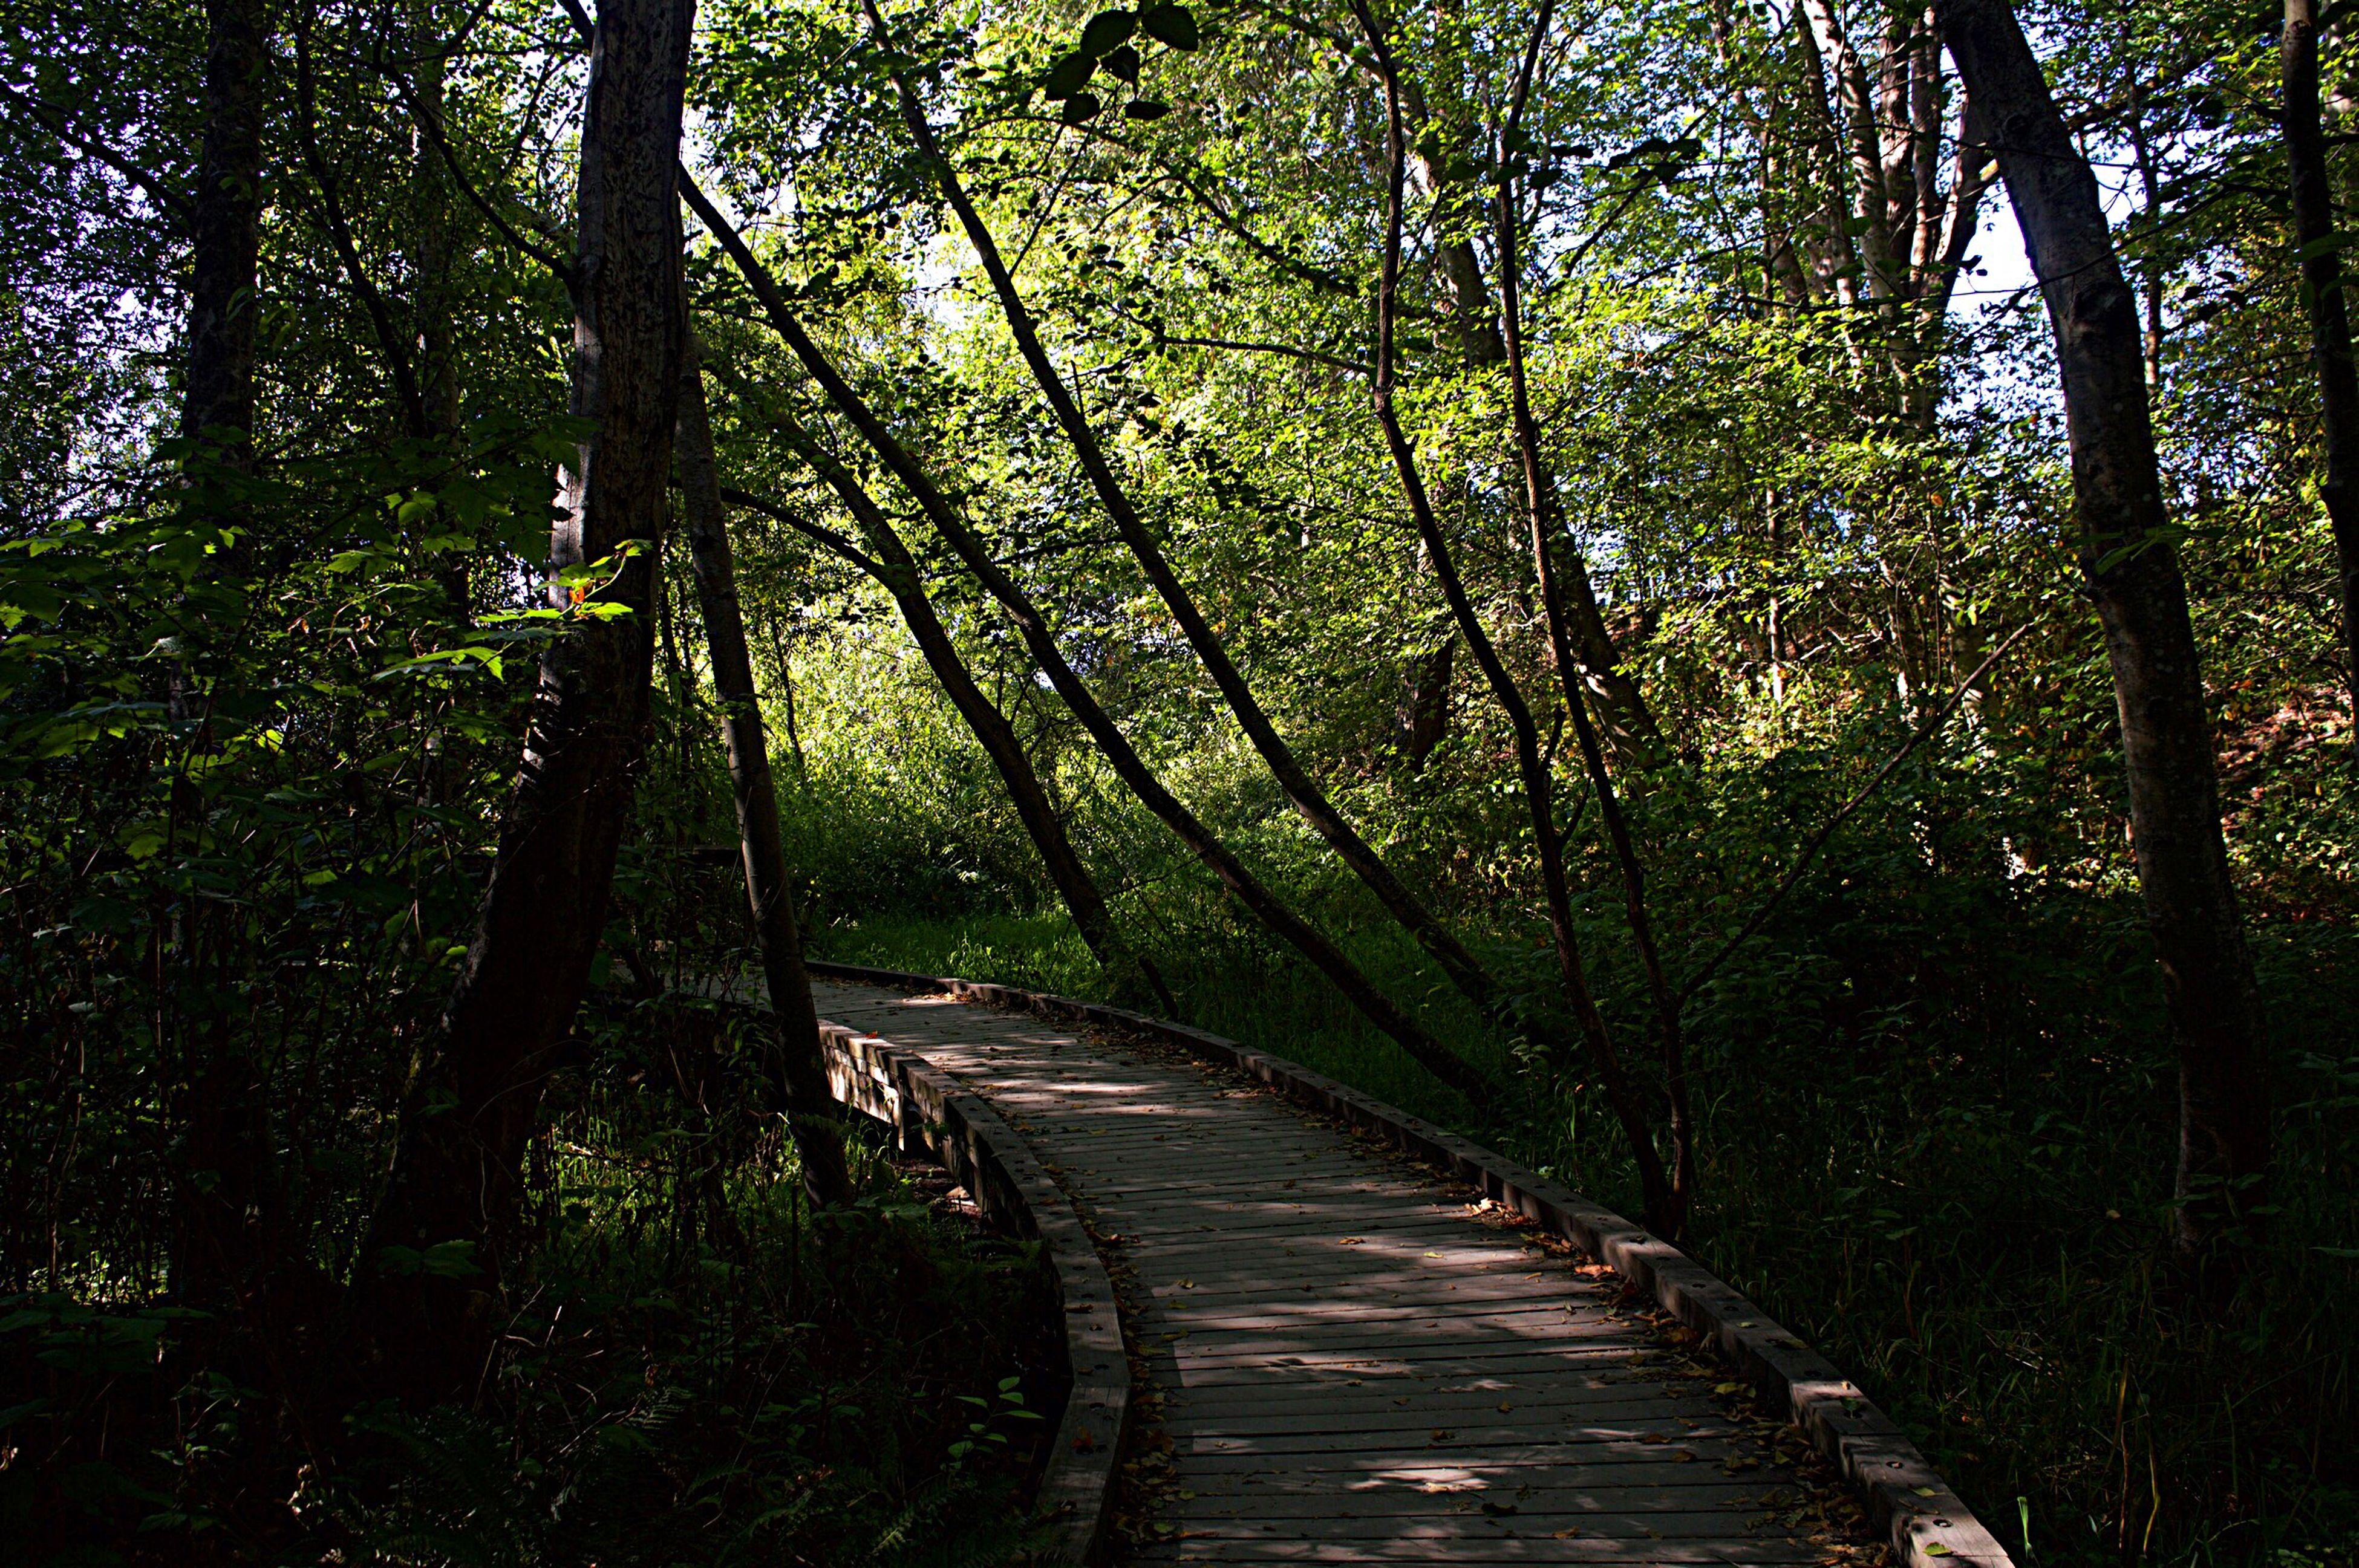 tree, tranquility, tranquil scene, growth, the way forward, forest, tree trunk, narrow, walkway, green color, long, scenics, nature, tourism, footpath, pathway, non-urban scene, beauty in nature, branch, woodland, green, day, travel destinations, vacations, outdoors, lush foliage, solitude, treelined, woods, boardwalk, pedestrian walkway